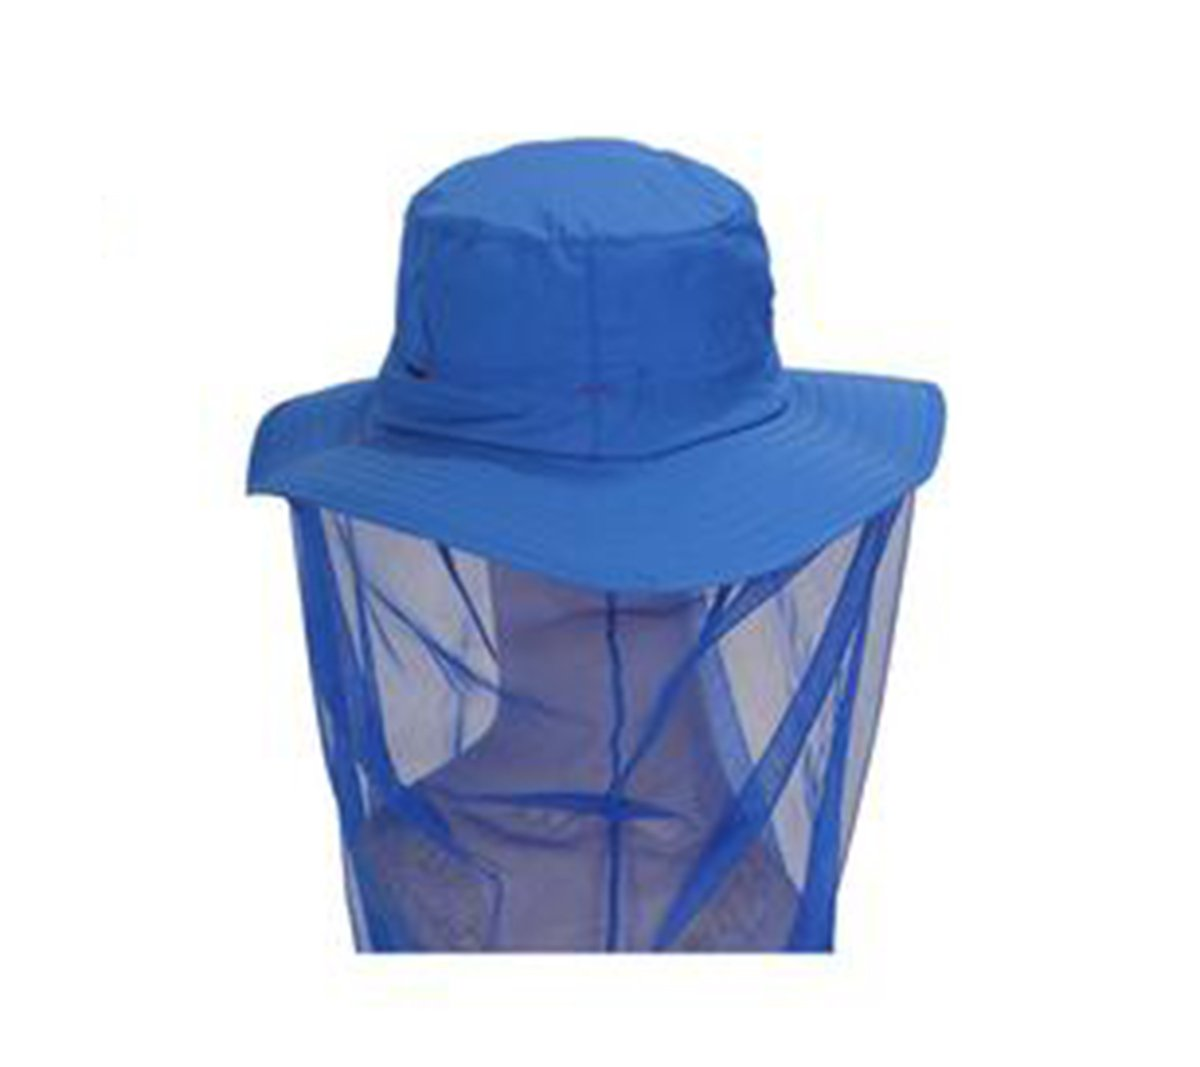 Blue Outdoor Anti-mosquito Mask Hat with Head Net Mesh Face Protection